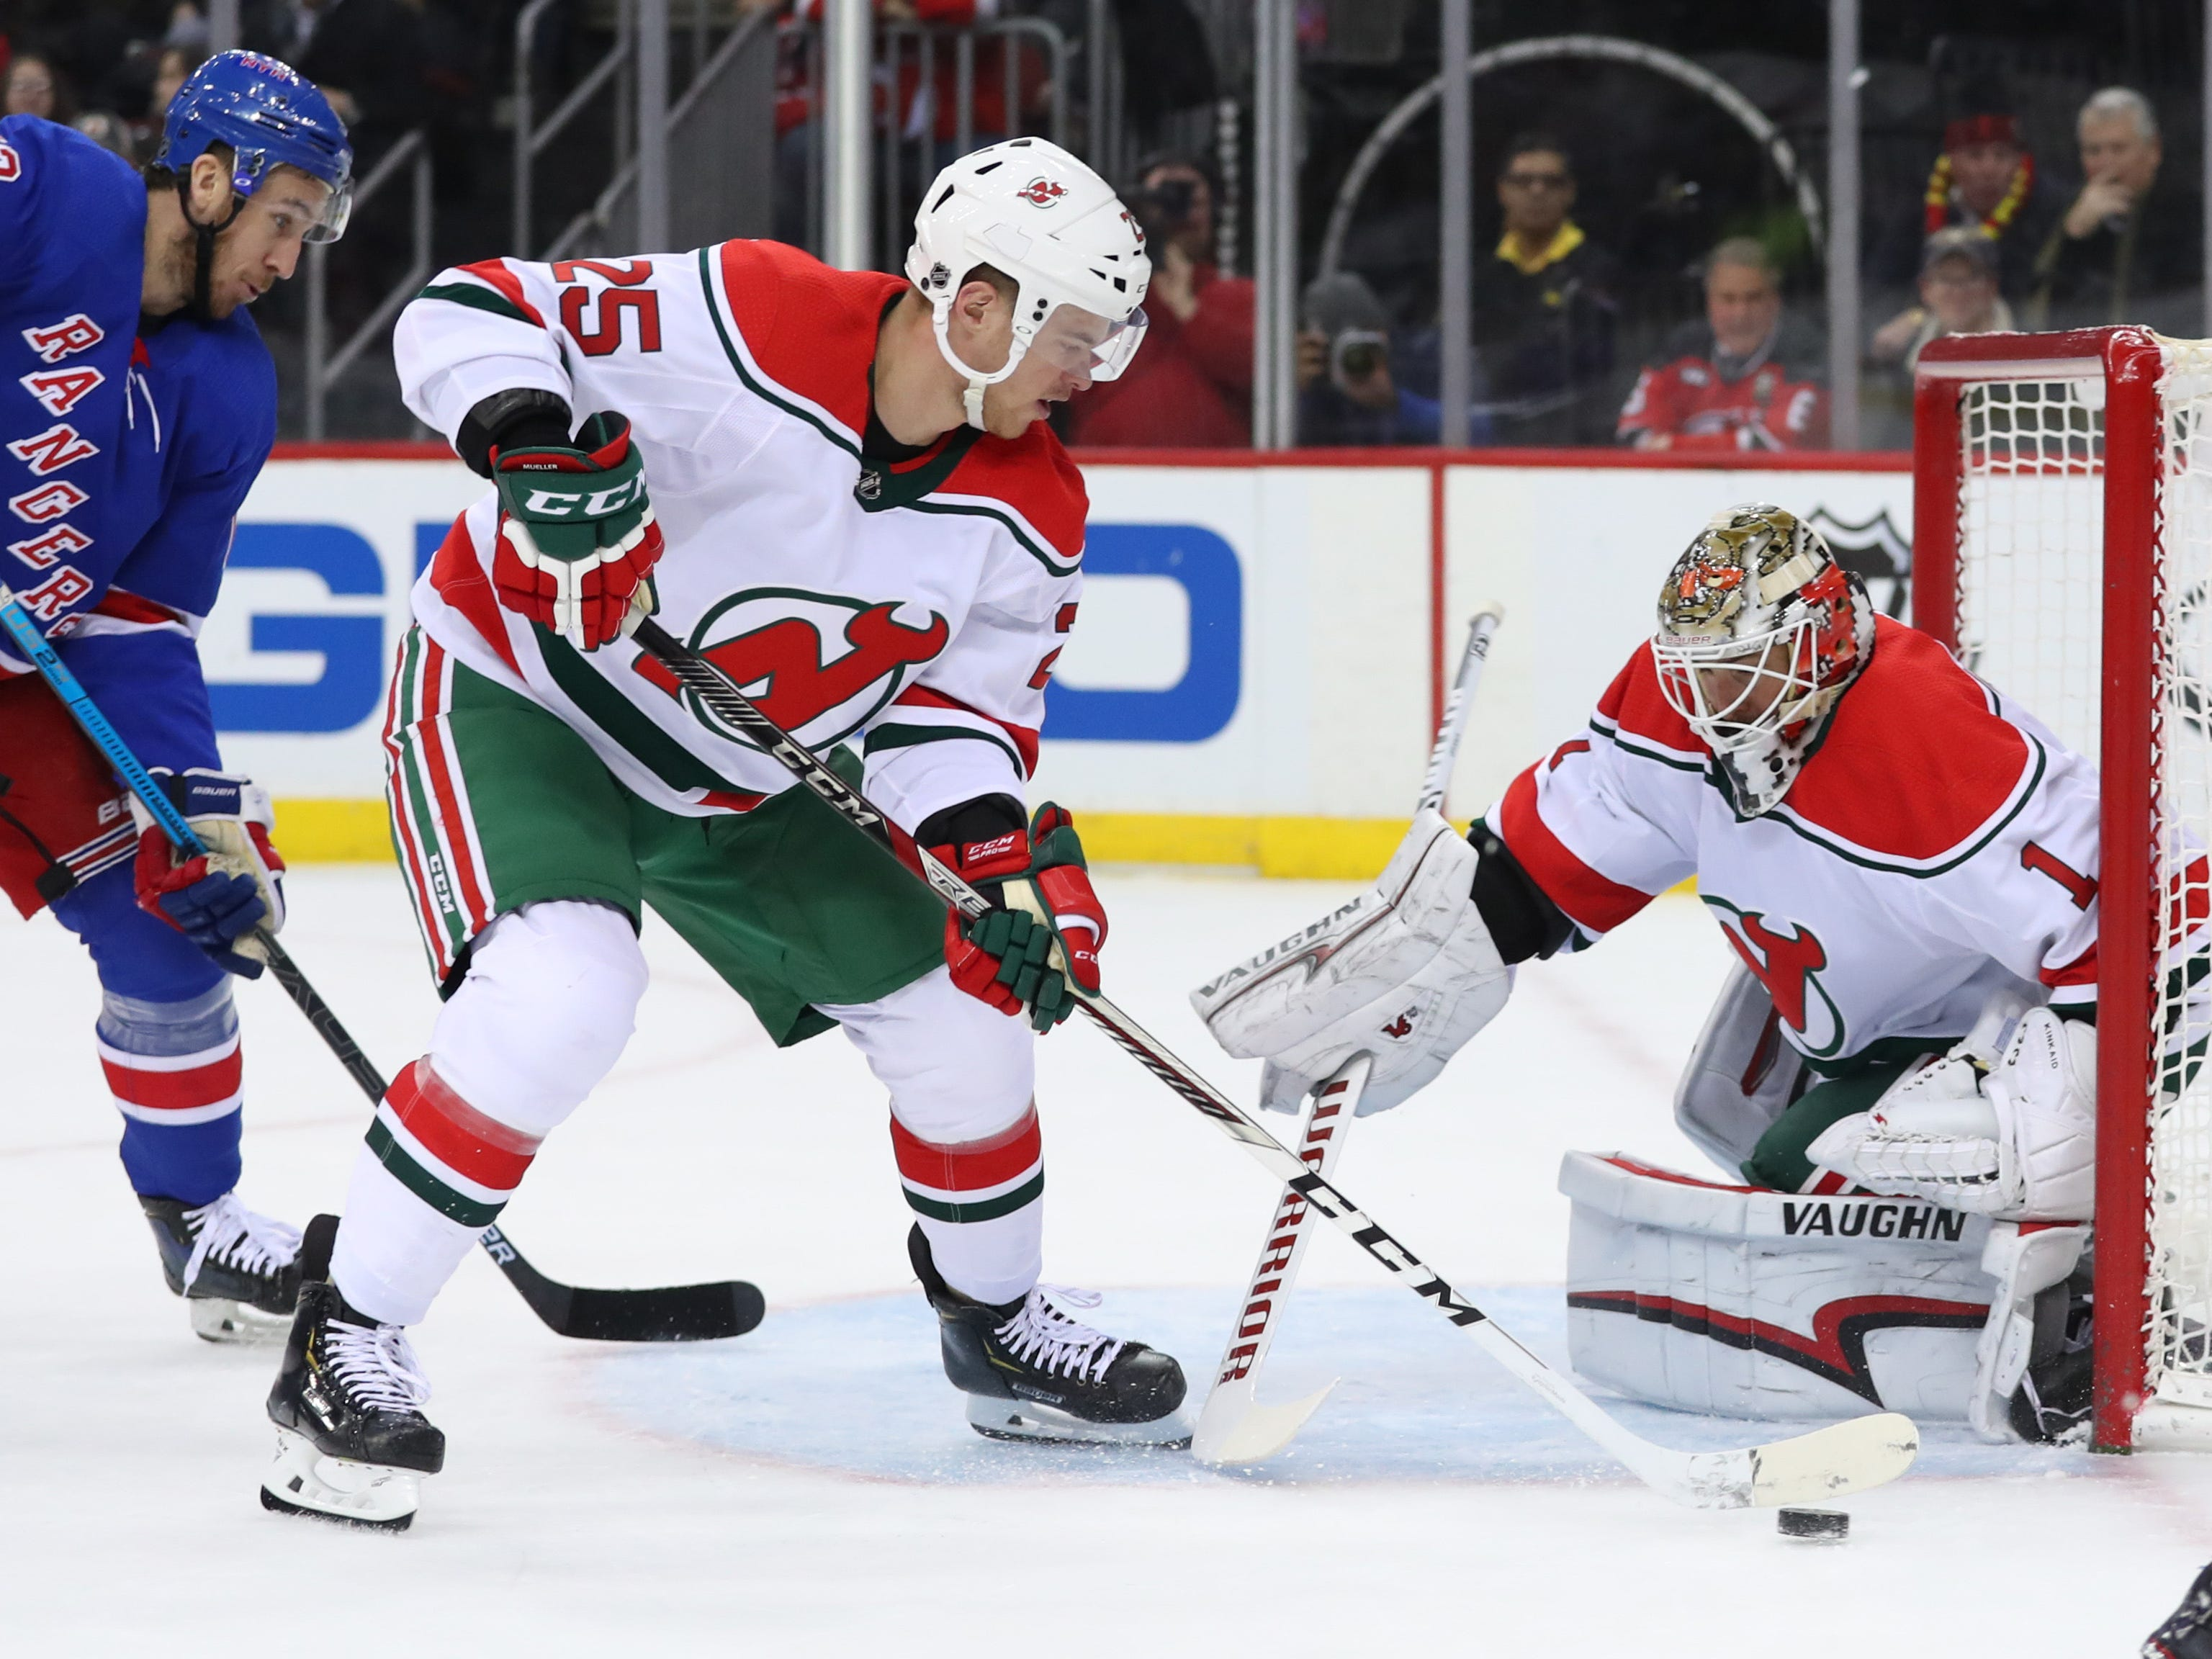 Jan 31, 2019; Newark, NJ, USA; New Jersey Devils defenseman Mirco Mueller (25) plays the puck in front of New Jersey Devils goaltender Keith Kinkaid (1) during the first period of their game against the New York Rangers at Prudential Center.